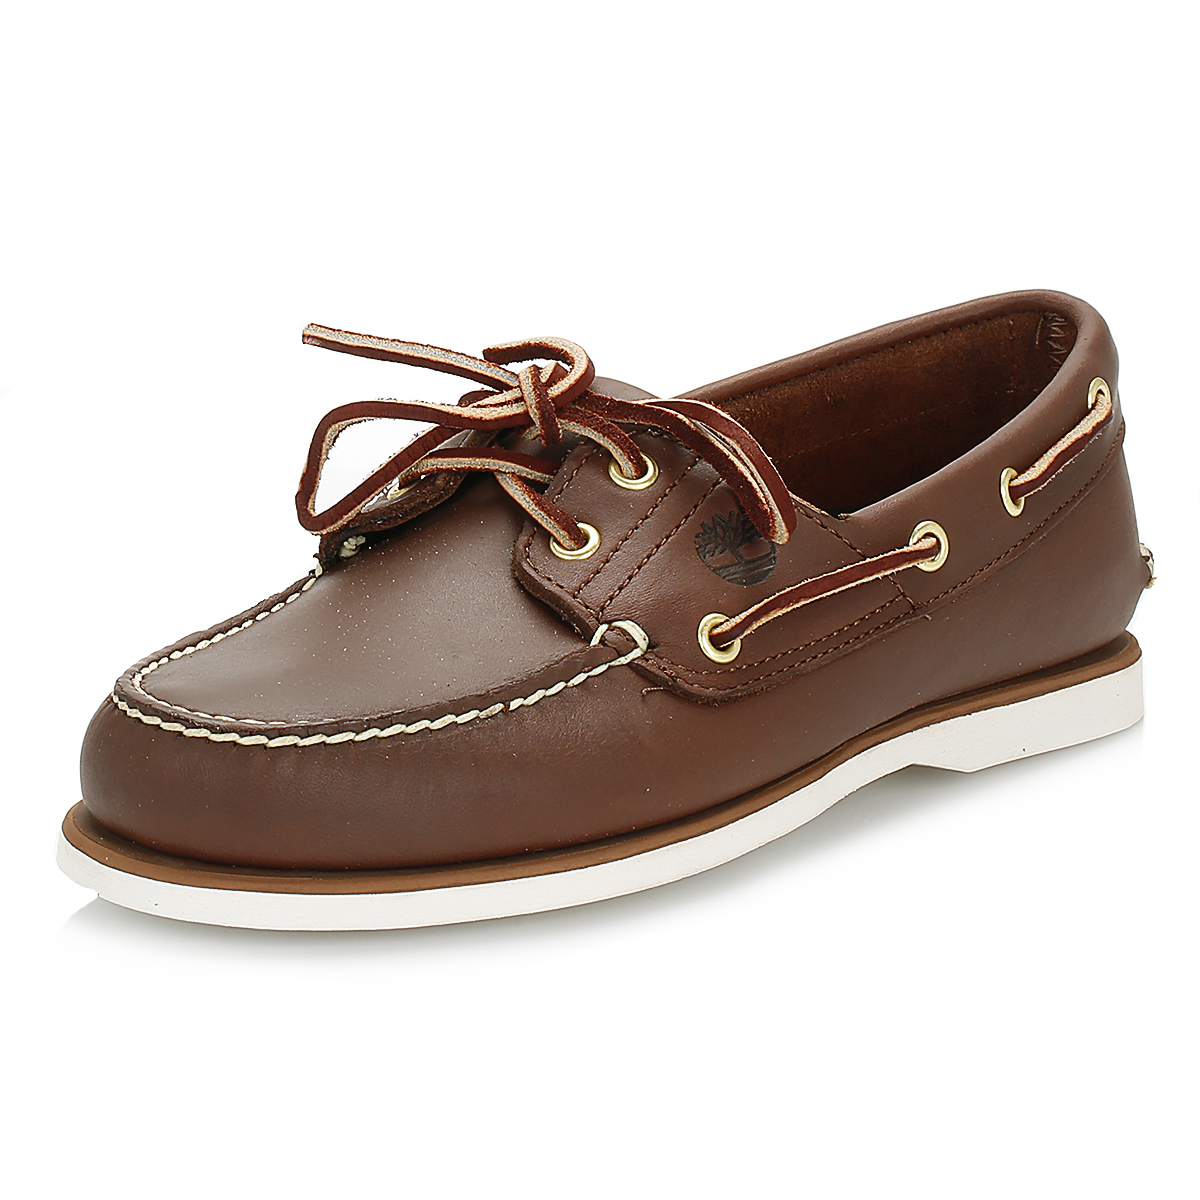 29a76ad3f Details about Timberland Classic Mens Brown Leather Boat Shoes